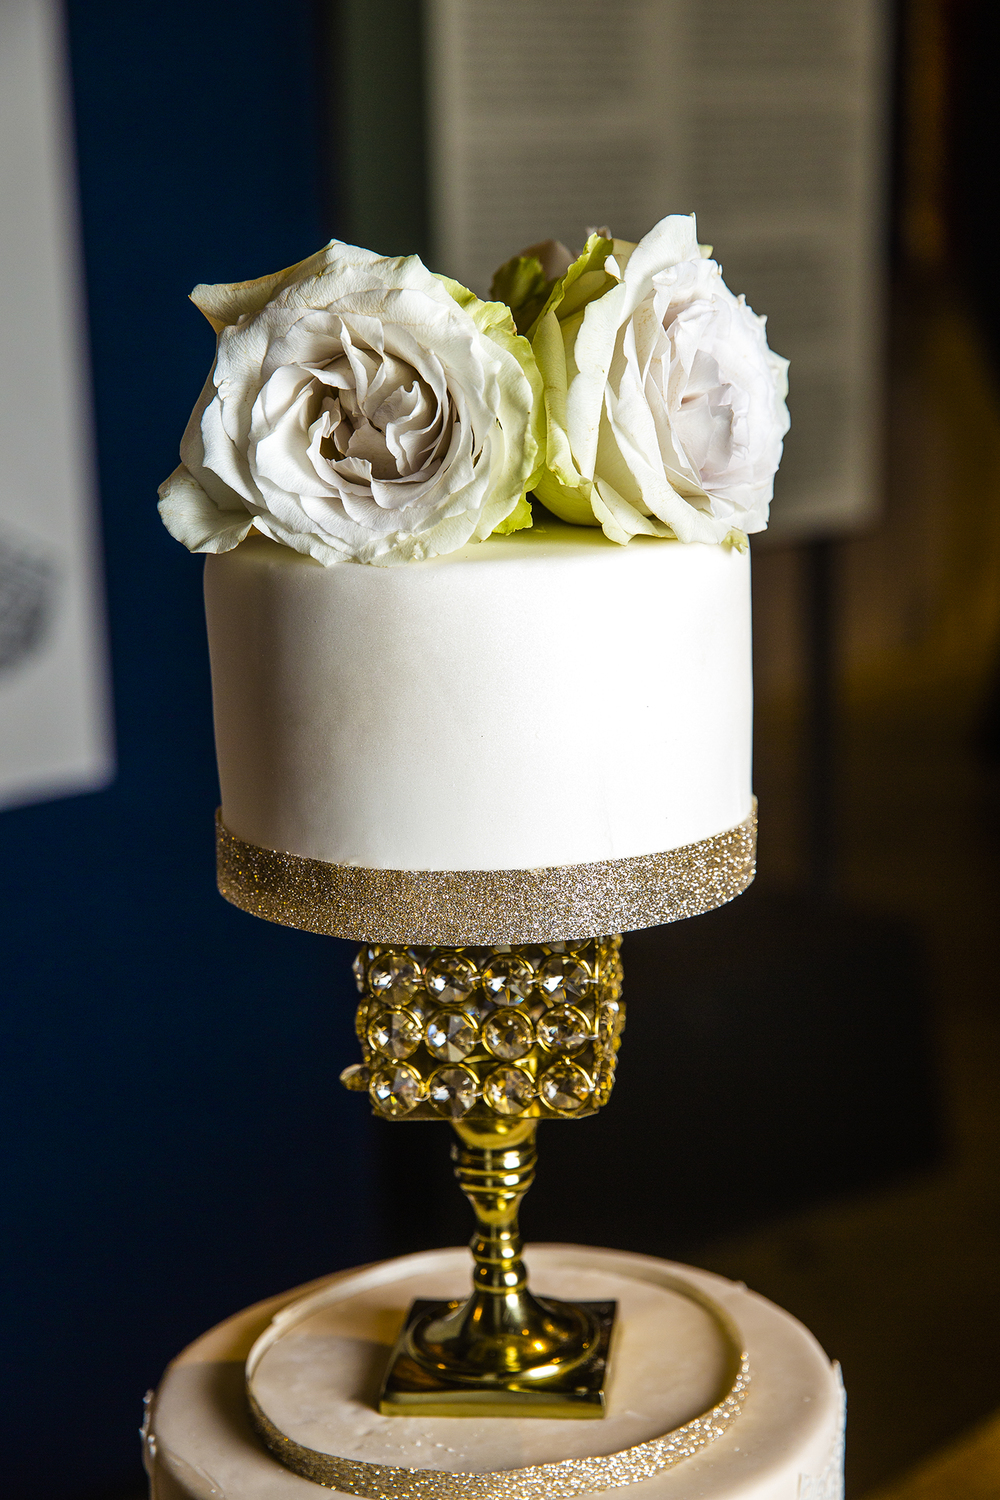 wedding cake details, elegant, wedding reception, made by the mother of the bride